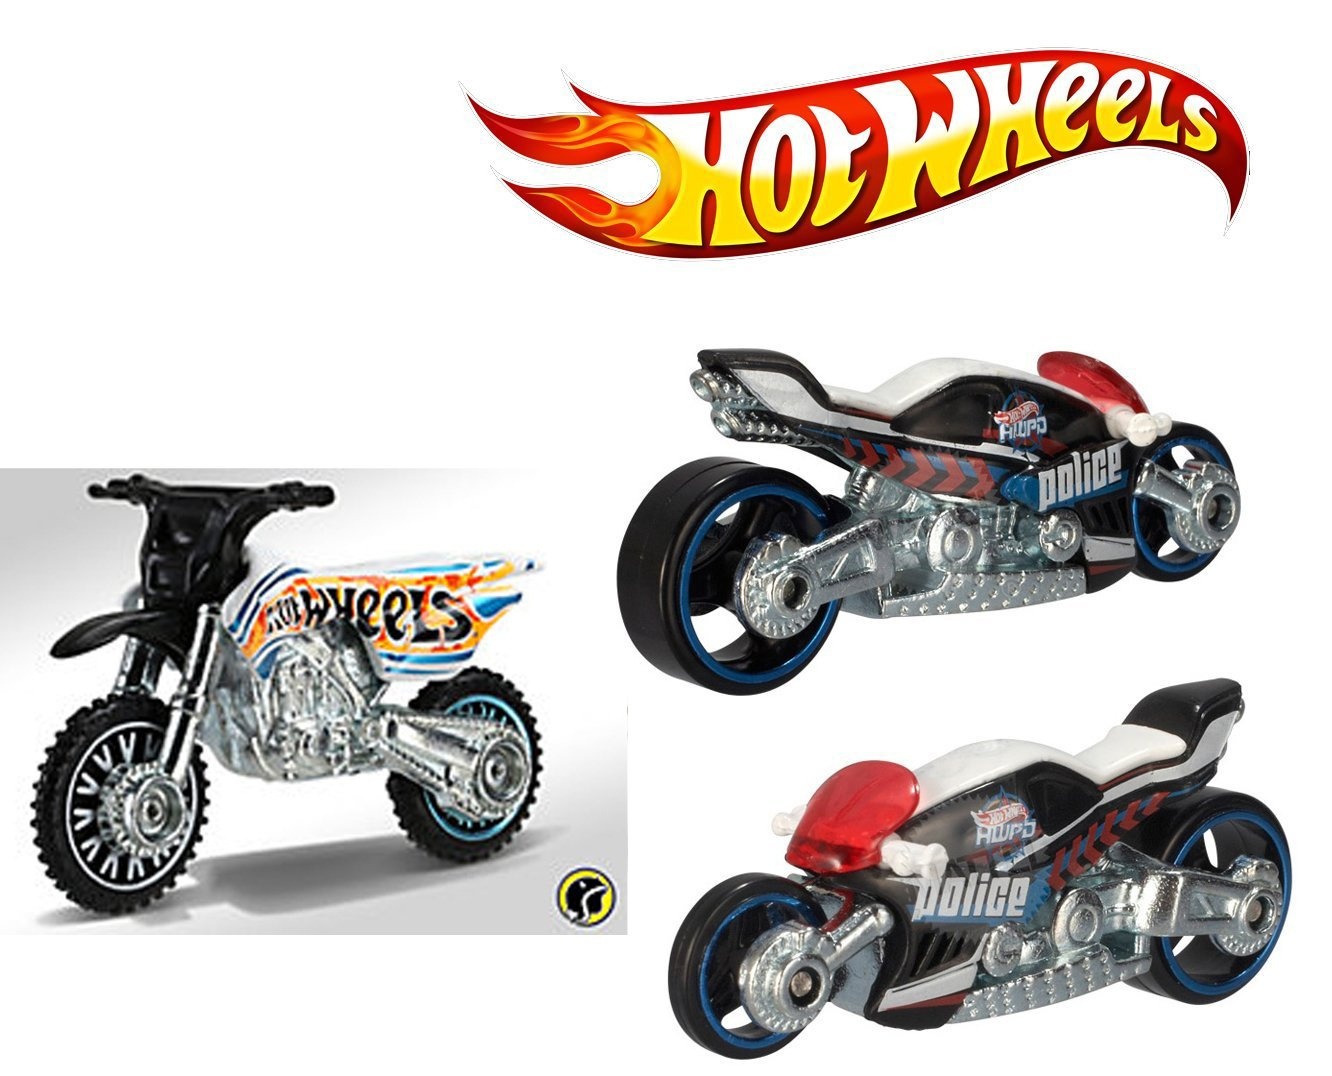 Hw hot wheels 2015 hw city 48 250 canyon carver police motorcycle - Amazon Com Motorcycles Hot Wheels Hw450f Dirt Bike 164 Canyon Carver Cycle 48 In Protective Cases Toys Games